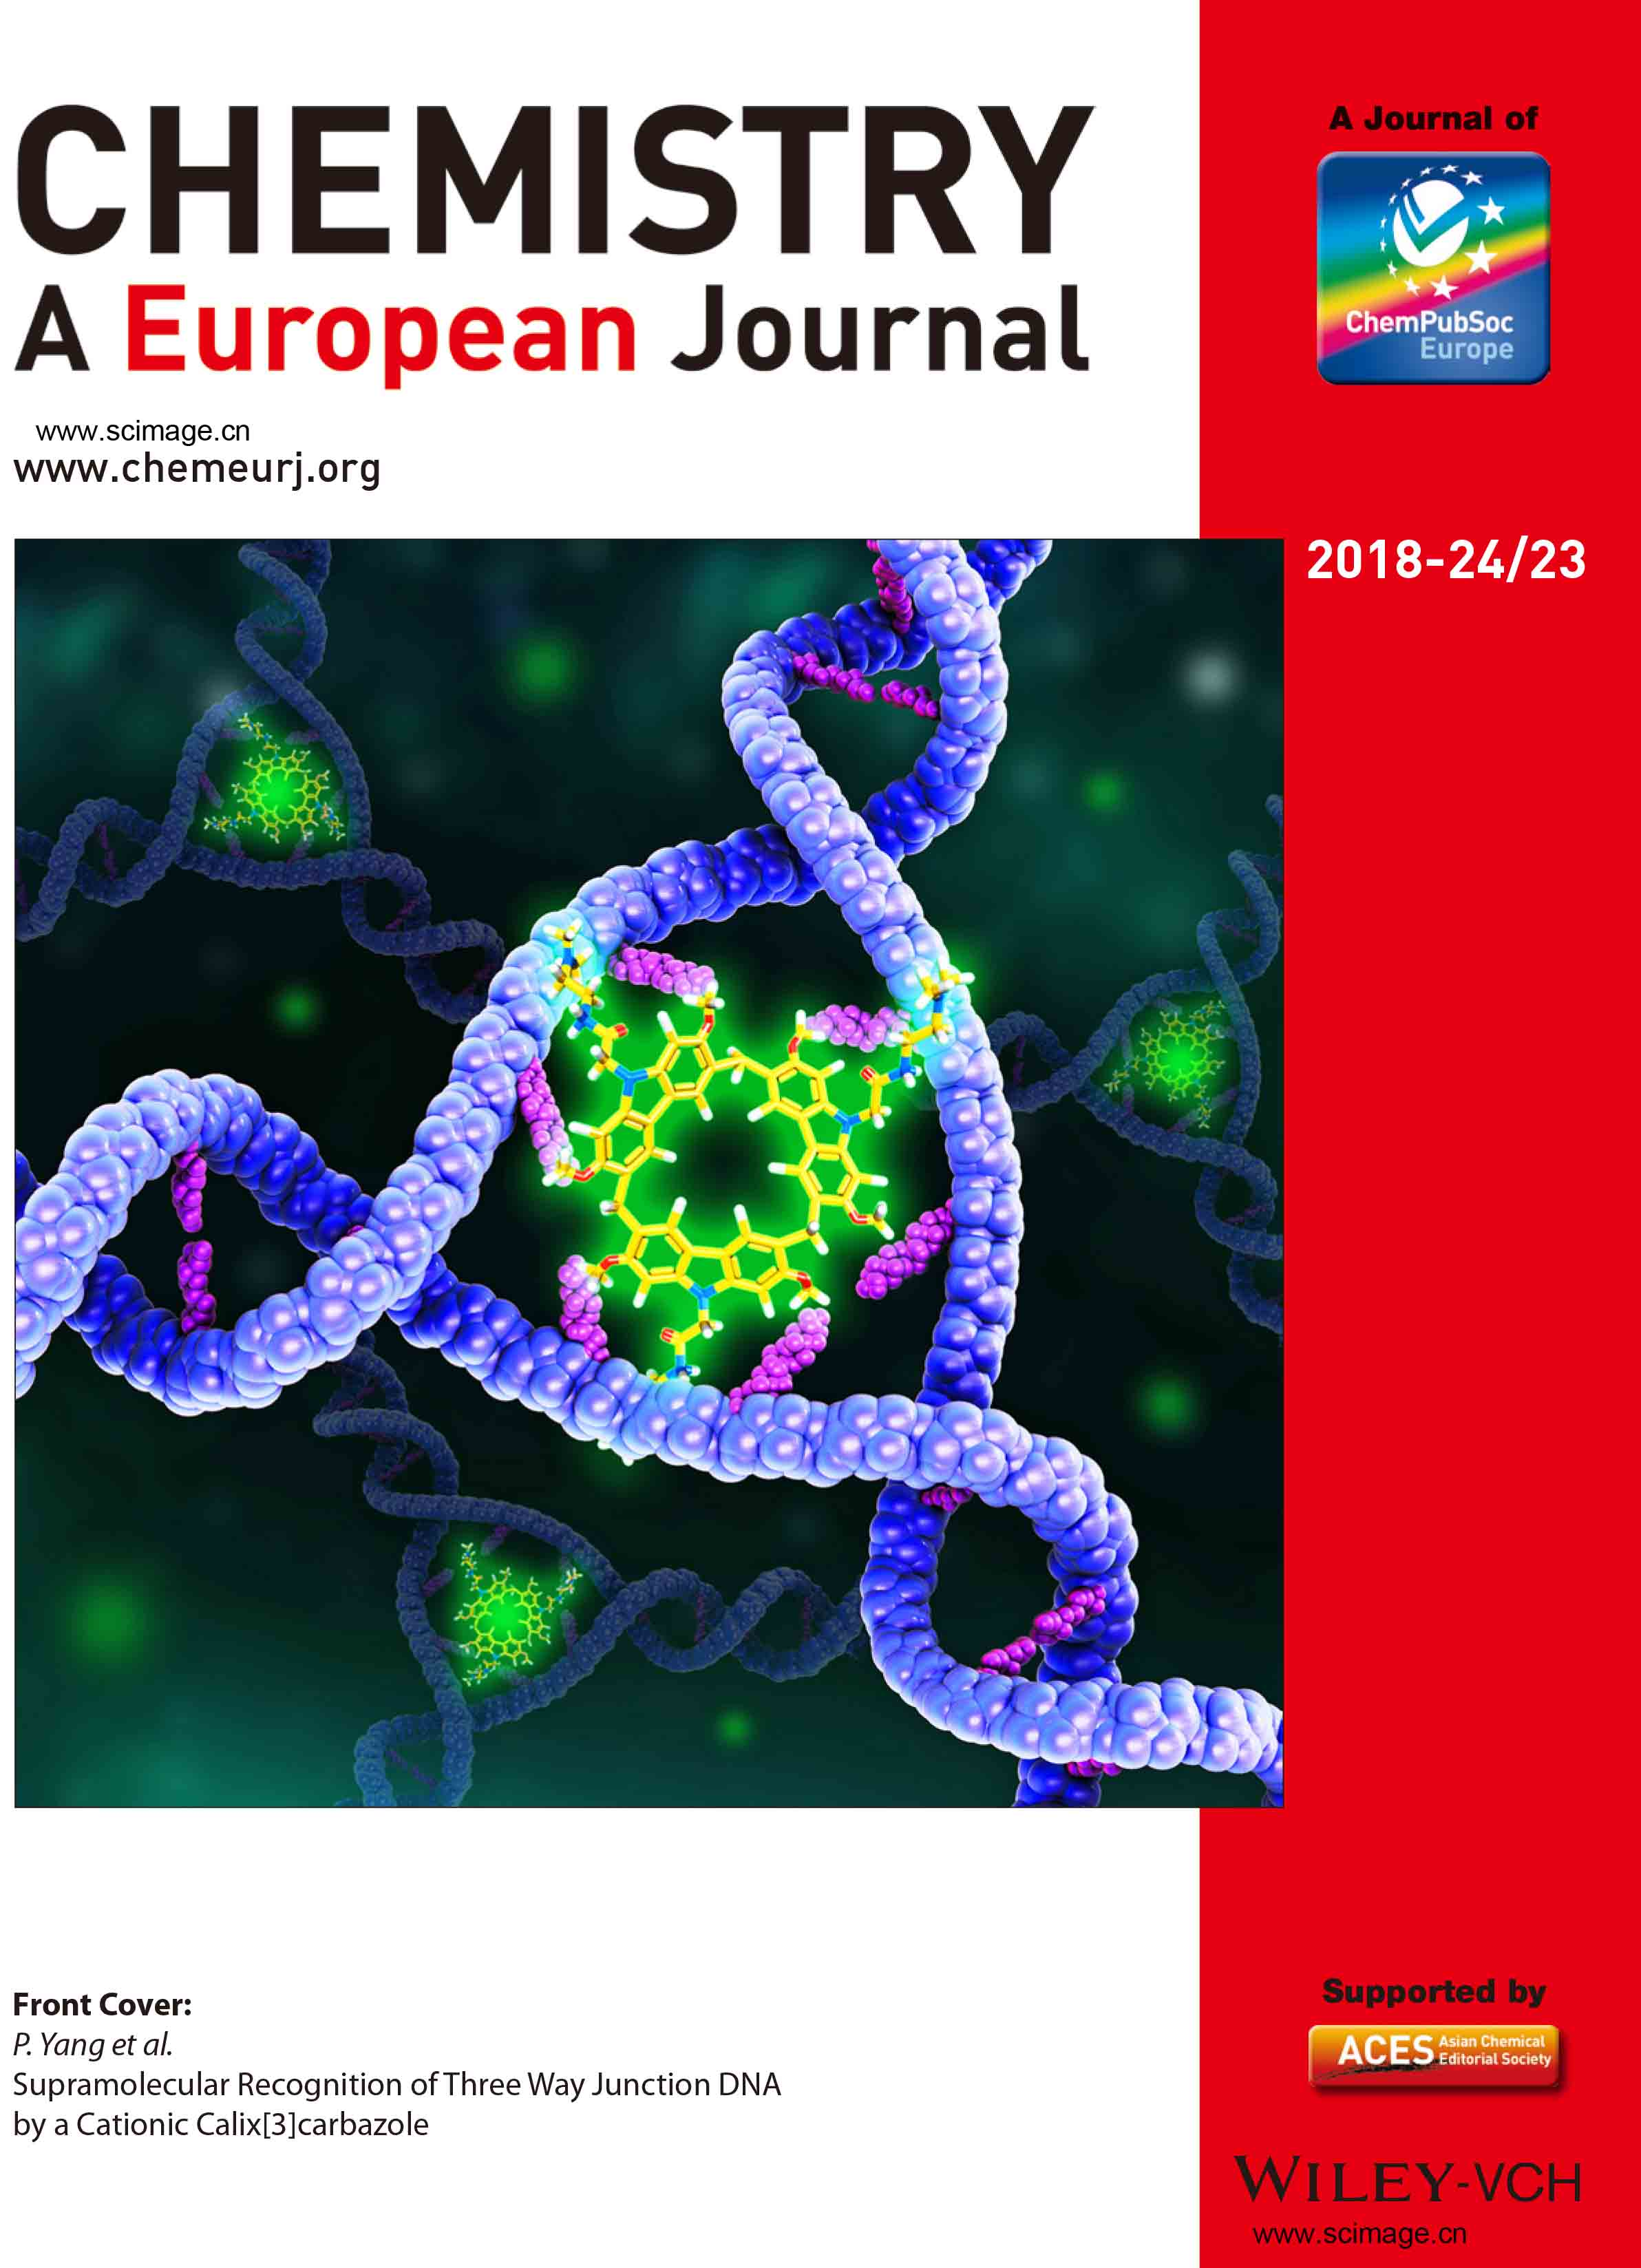 Front Cover: Supramolecular Recognition of Three Way Junction DNA by a Cationic Calix[3]carbazole